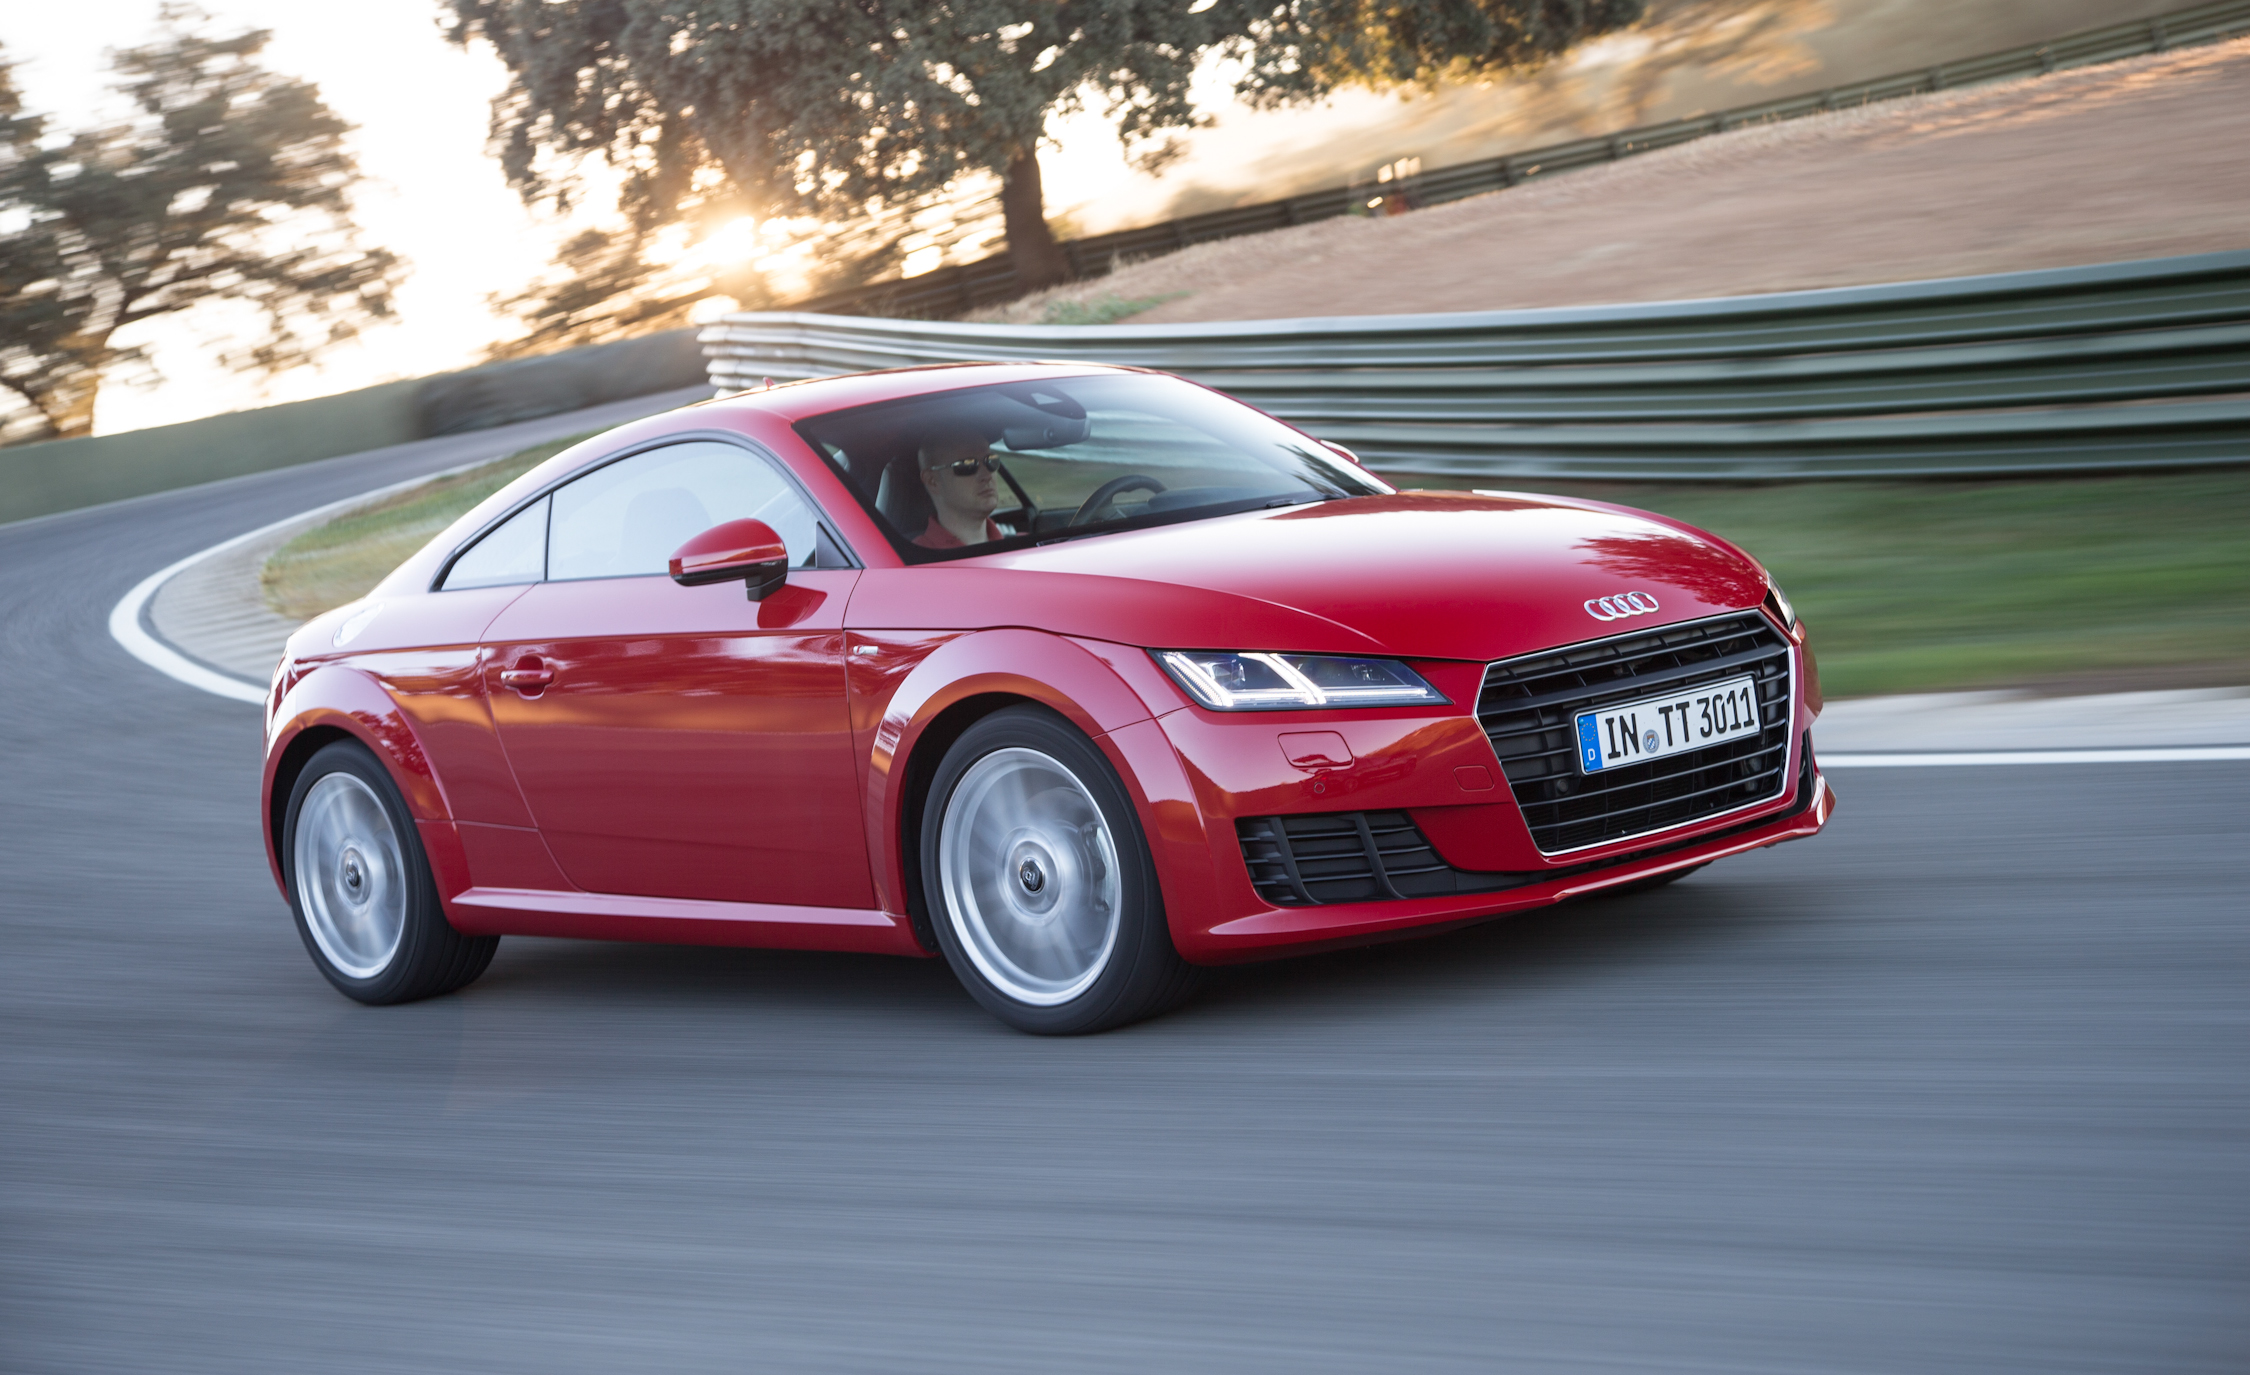 2016 Audi TT Coupe Test Drive